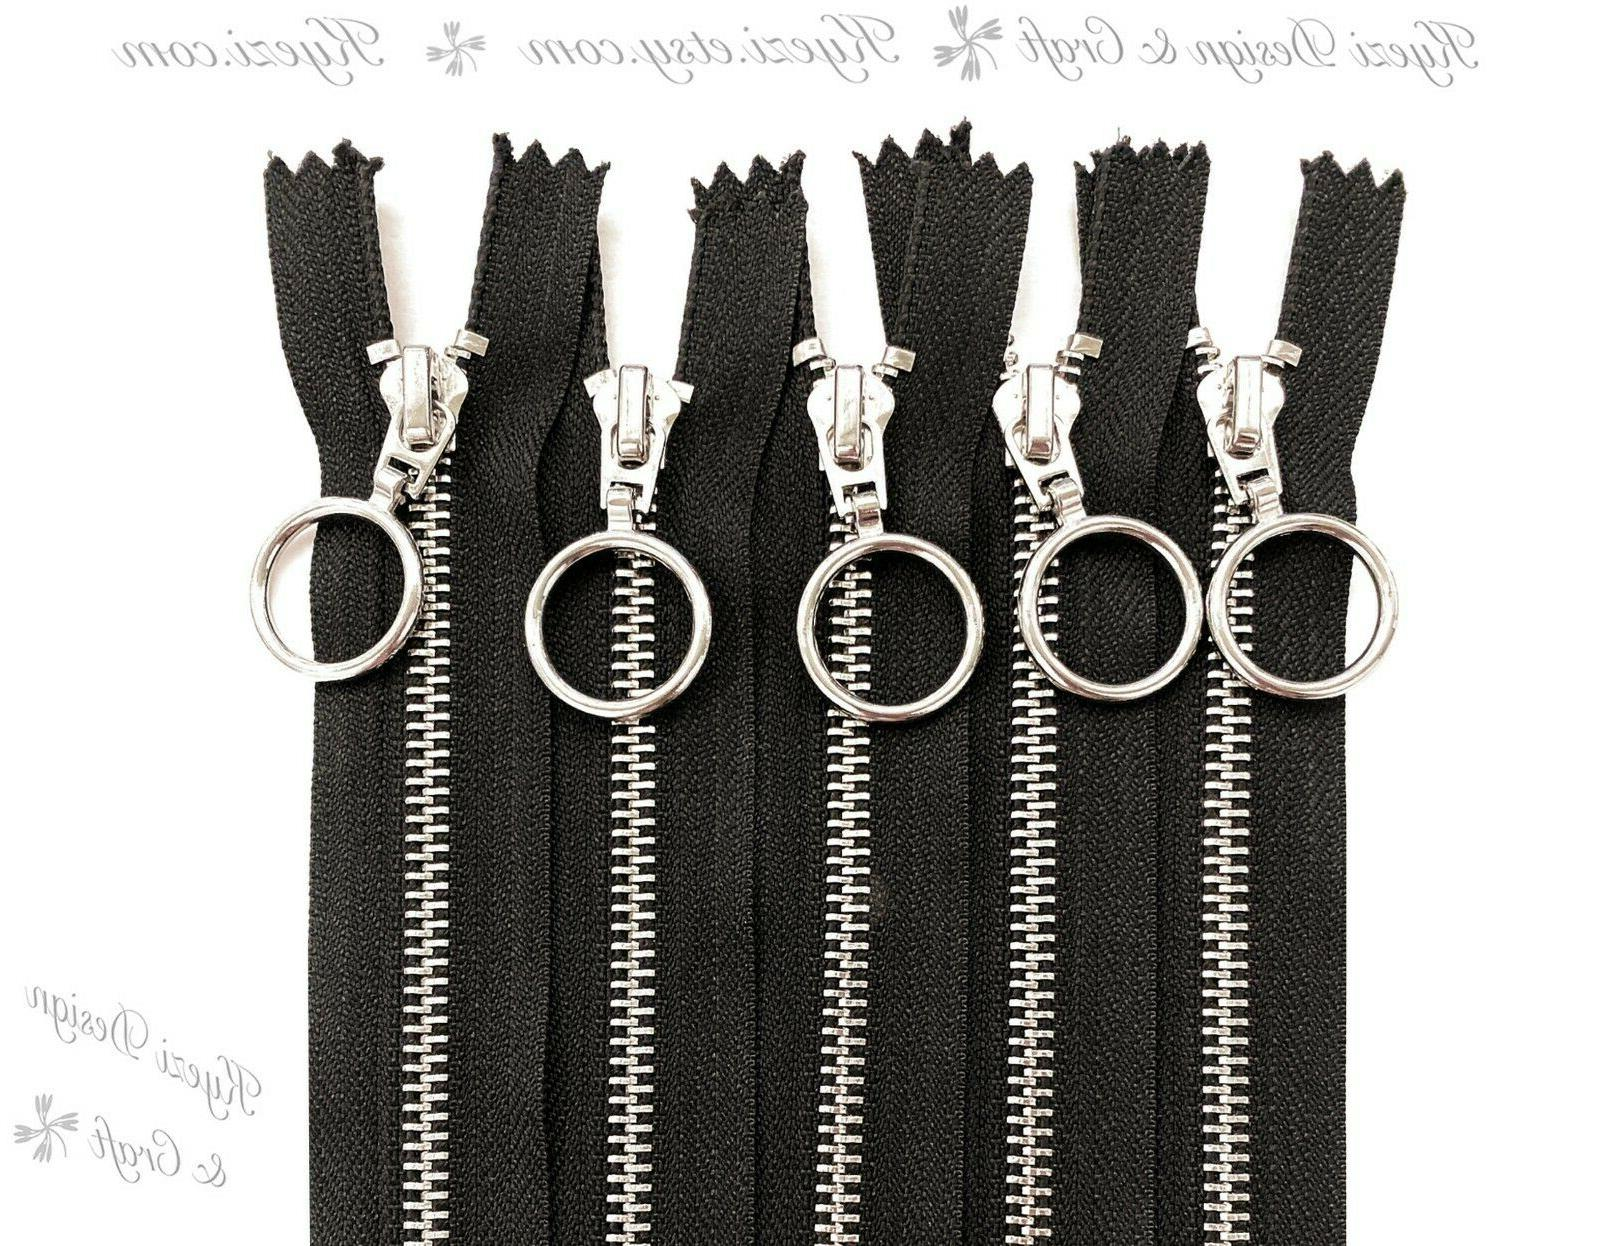 5 10 15 pcs 9 - Inch Silver Ring Zippers